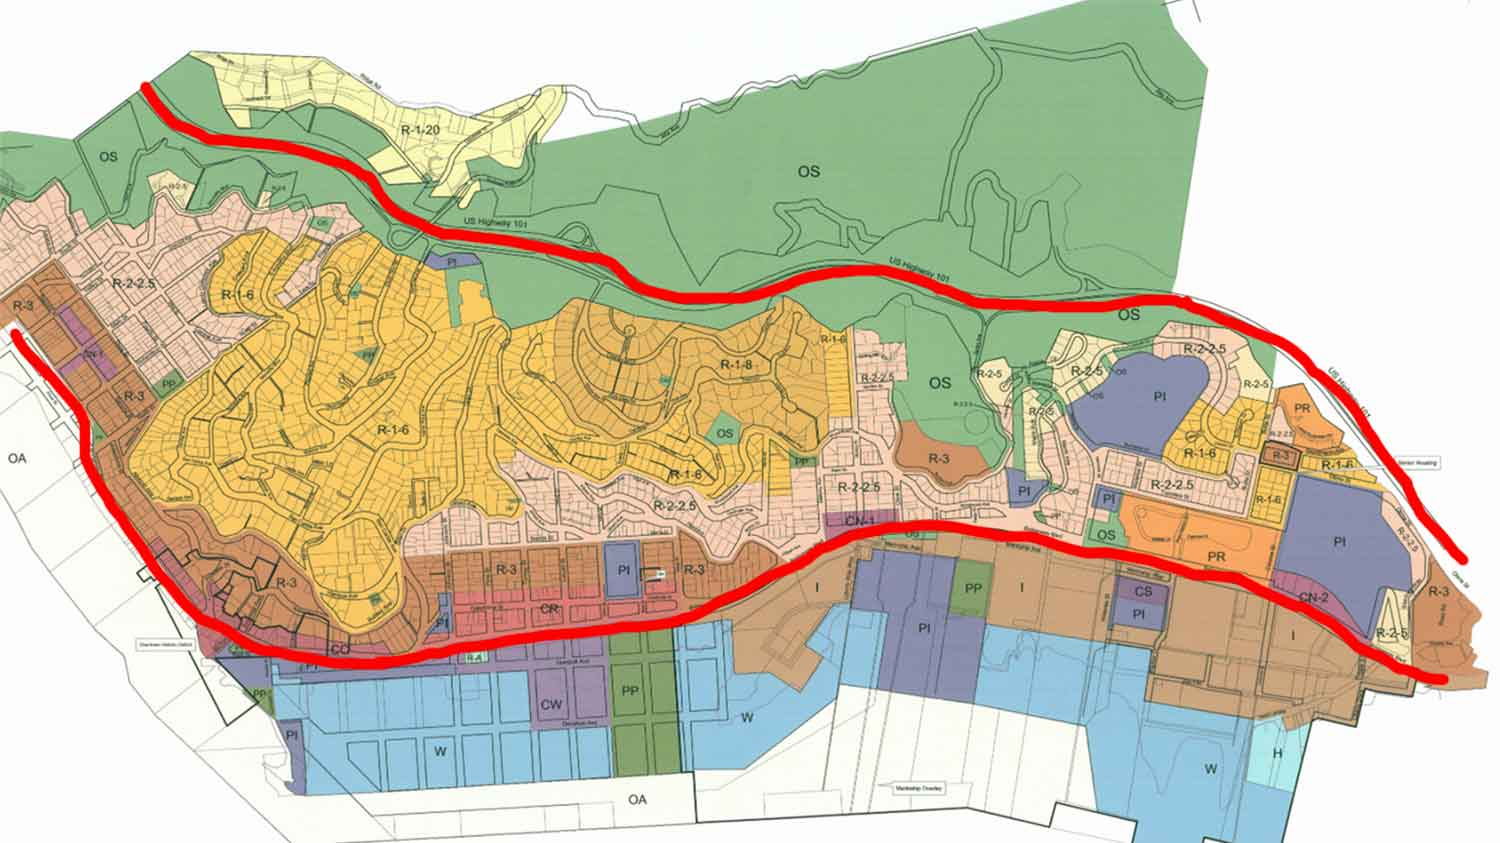 Zoning Map Boundaries